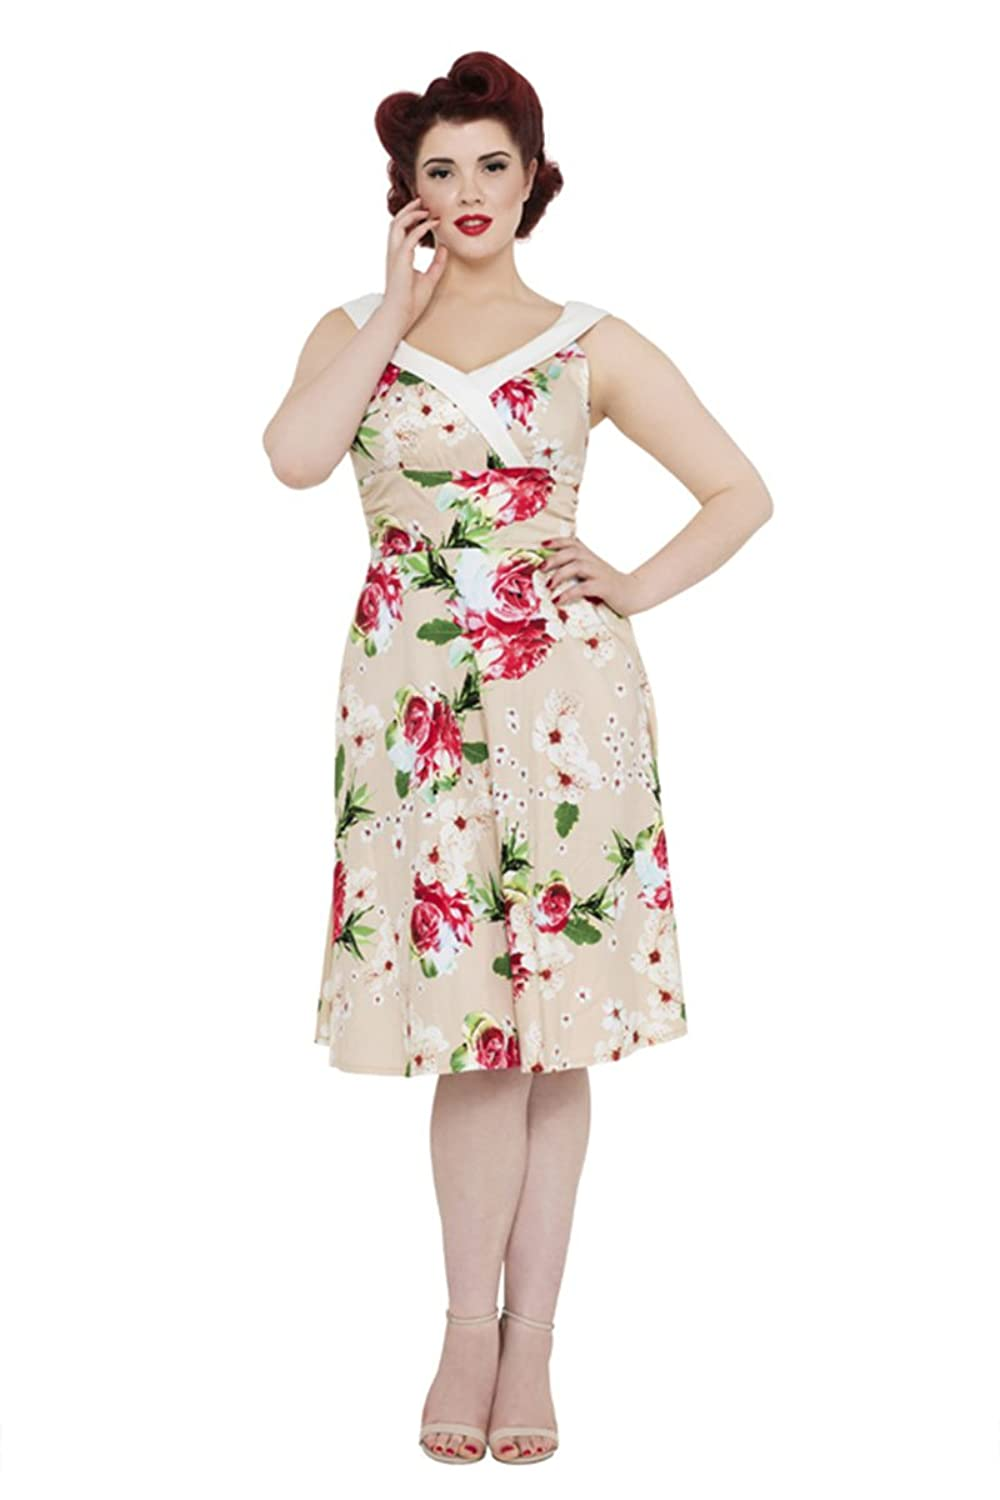 Rockabilly Dresses | Rockabilly Clothing | Viva Las Vegas Voodoo Vixen Taupe Vintage Floral Tropical Dress $66.49 AT vintagedancer.com